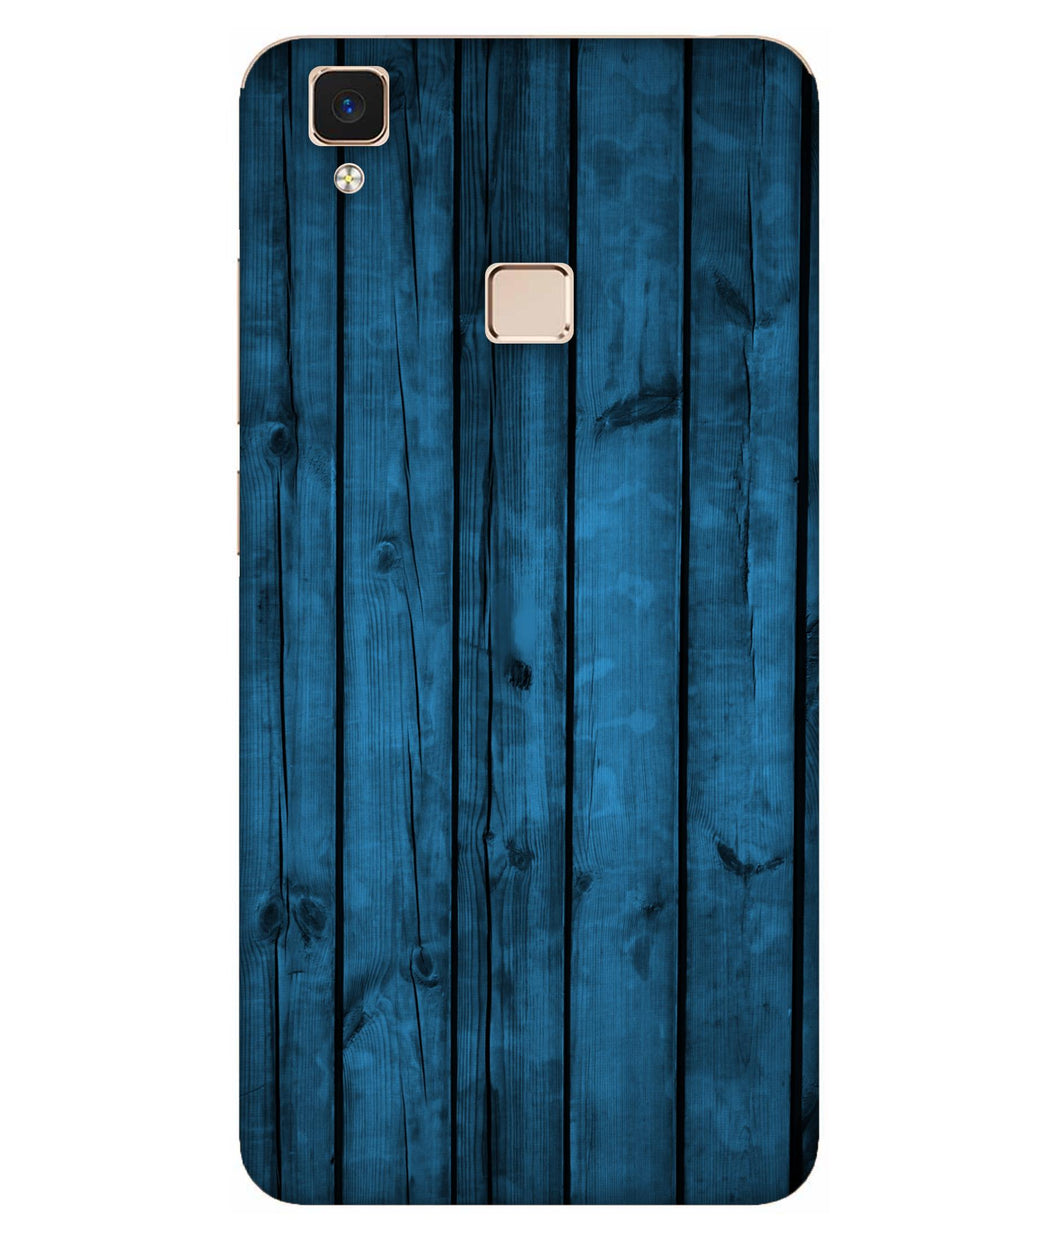 Vivo V3 Blue Woods Mobile cover